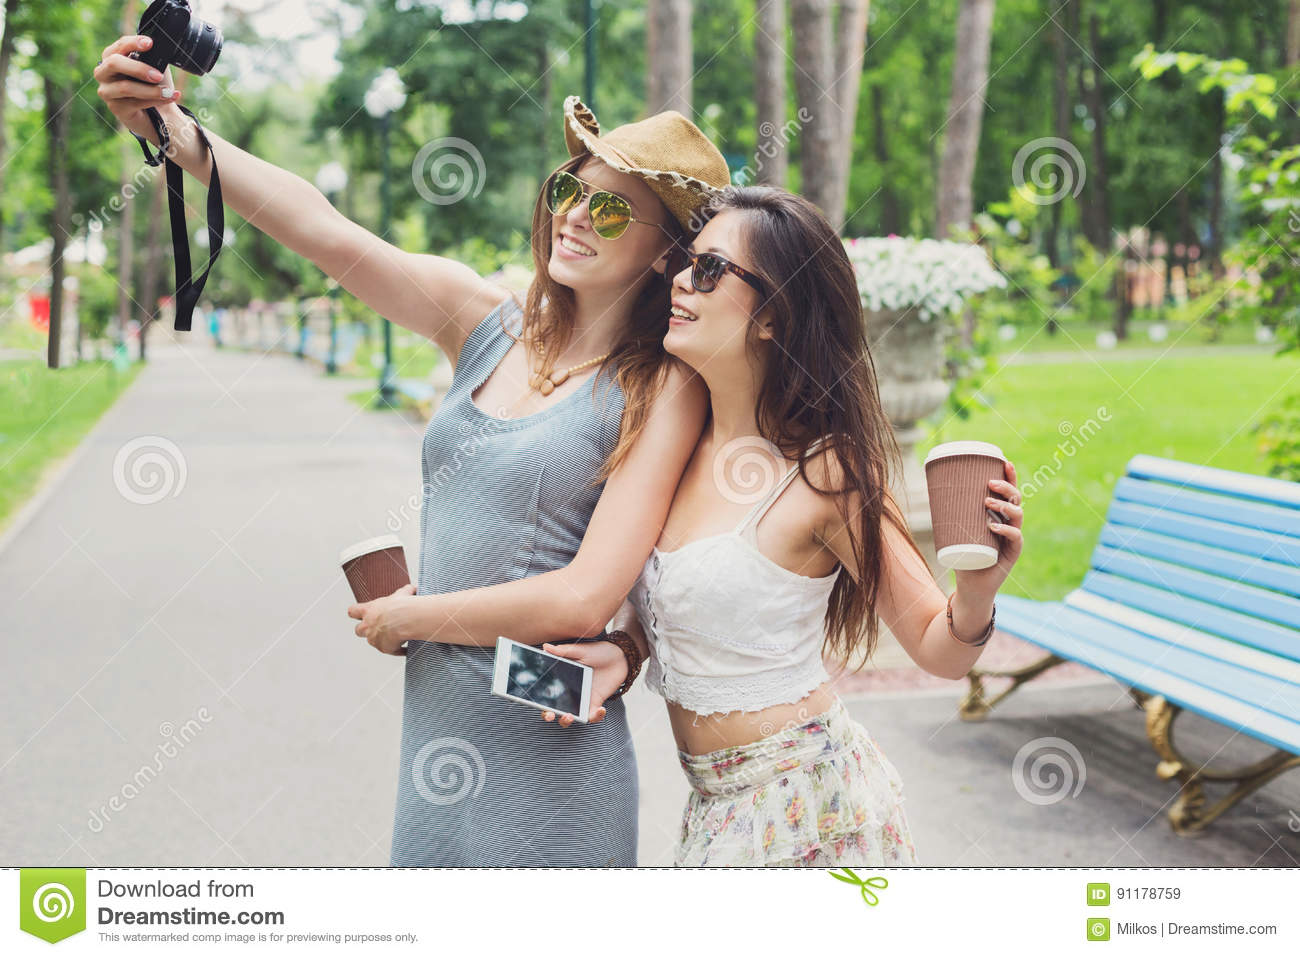 743a46c31b Two girls friends outdoors take selfie with smartphone. Young female  tourists in boho chic fashion clothes